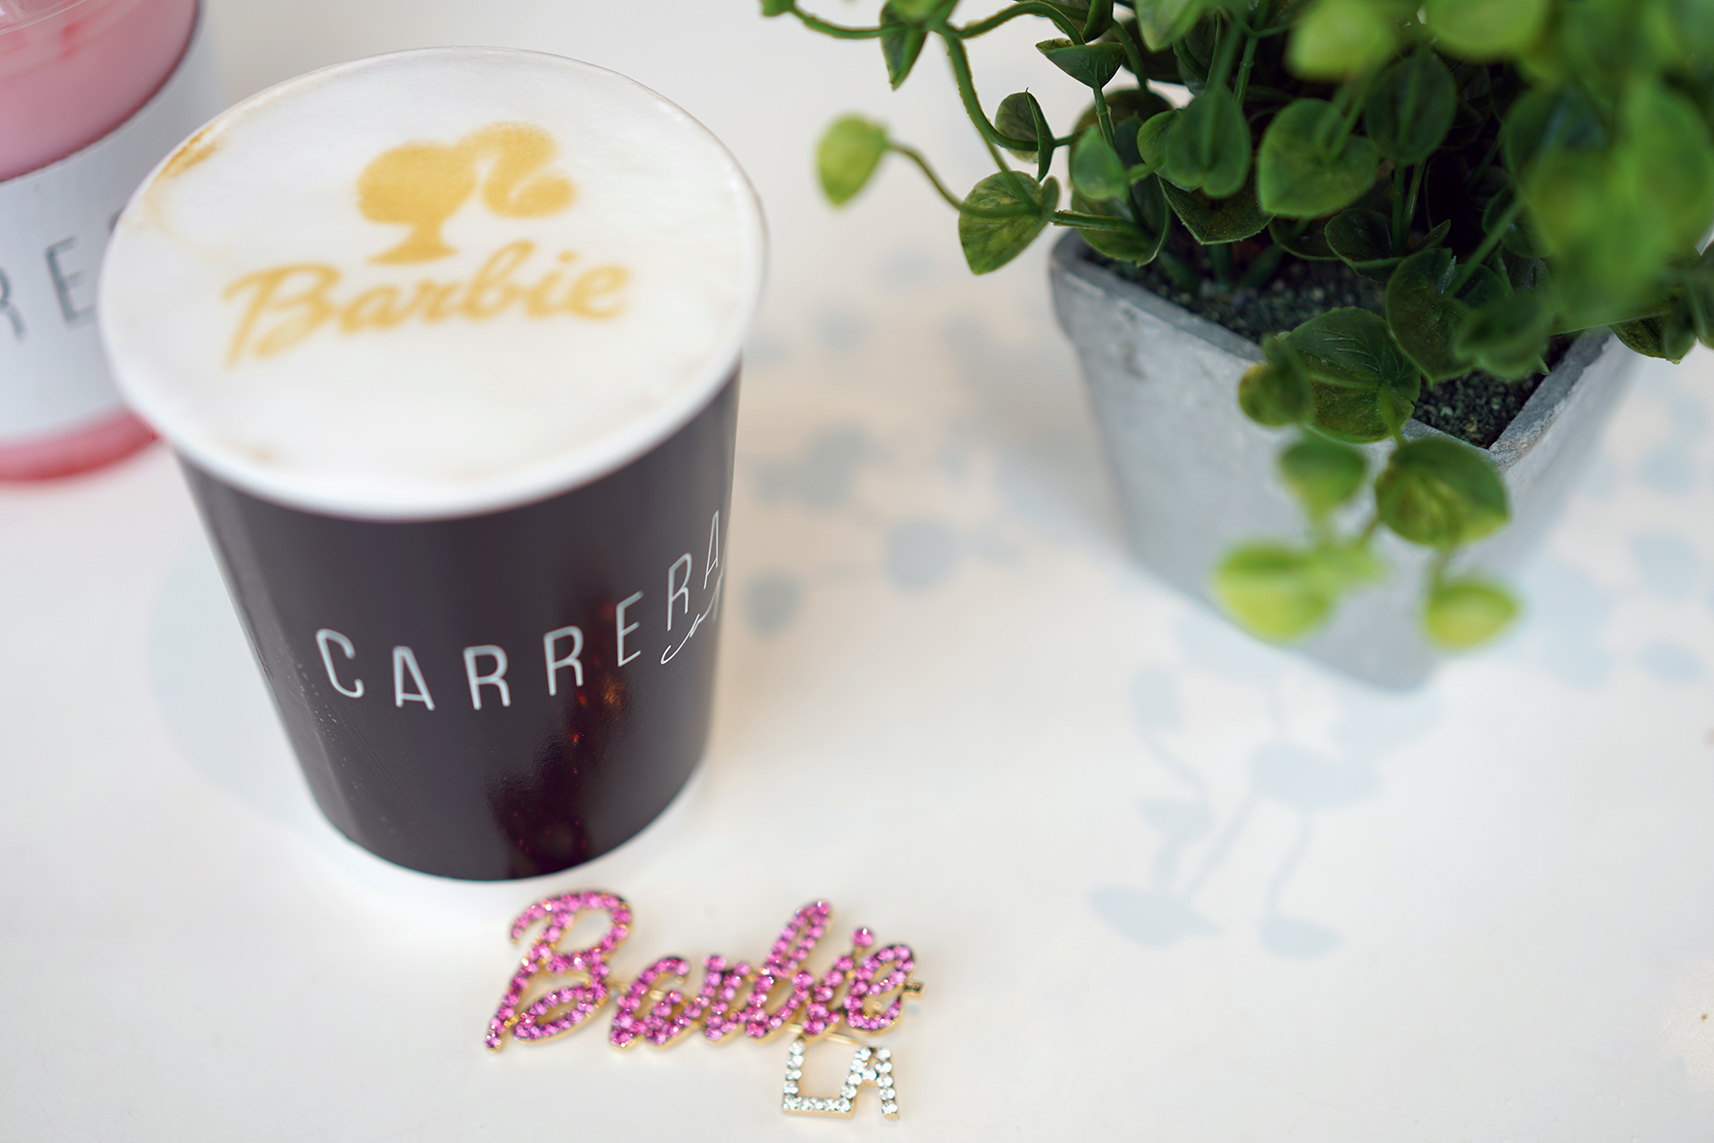 Barbie Ripple Design on a Carrera Coffee, Barbie LA crystal pin